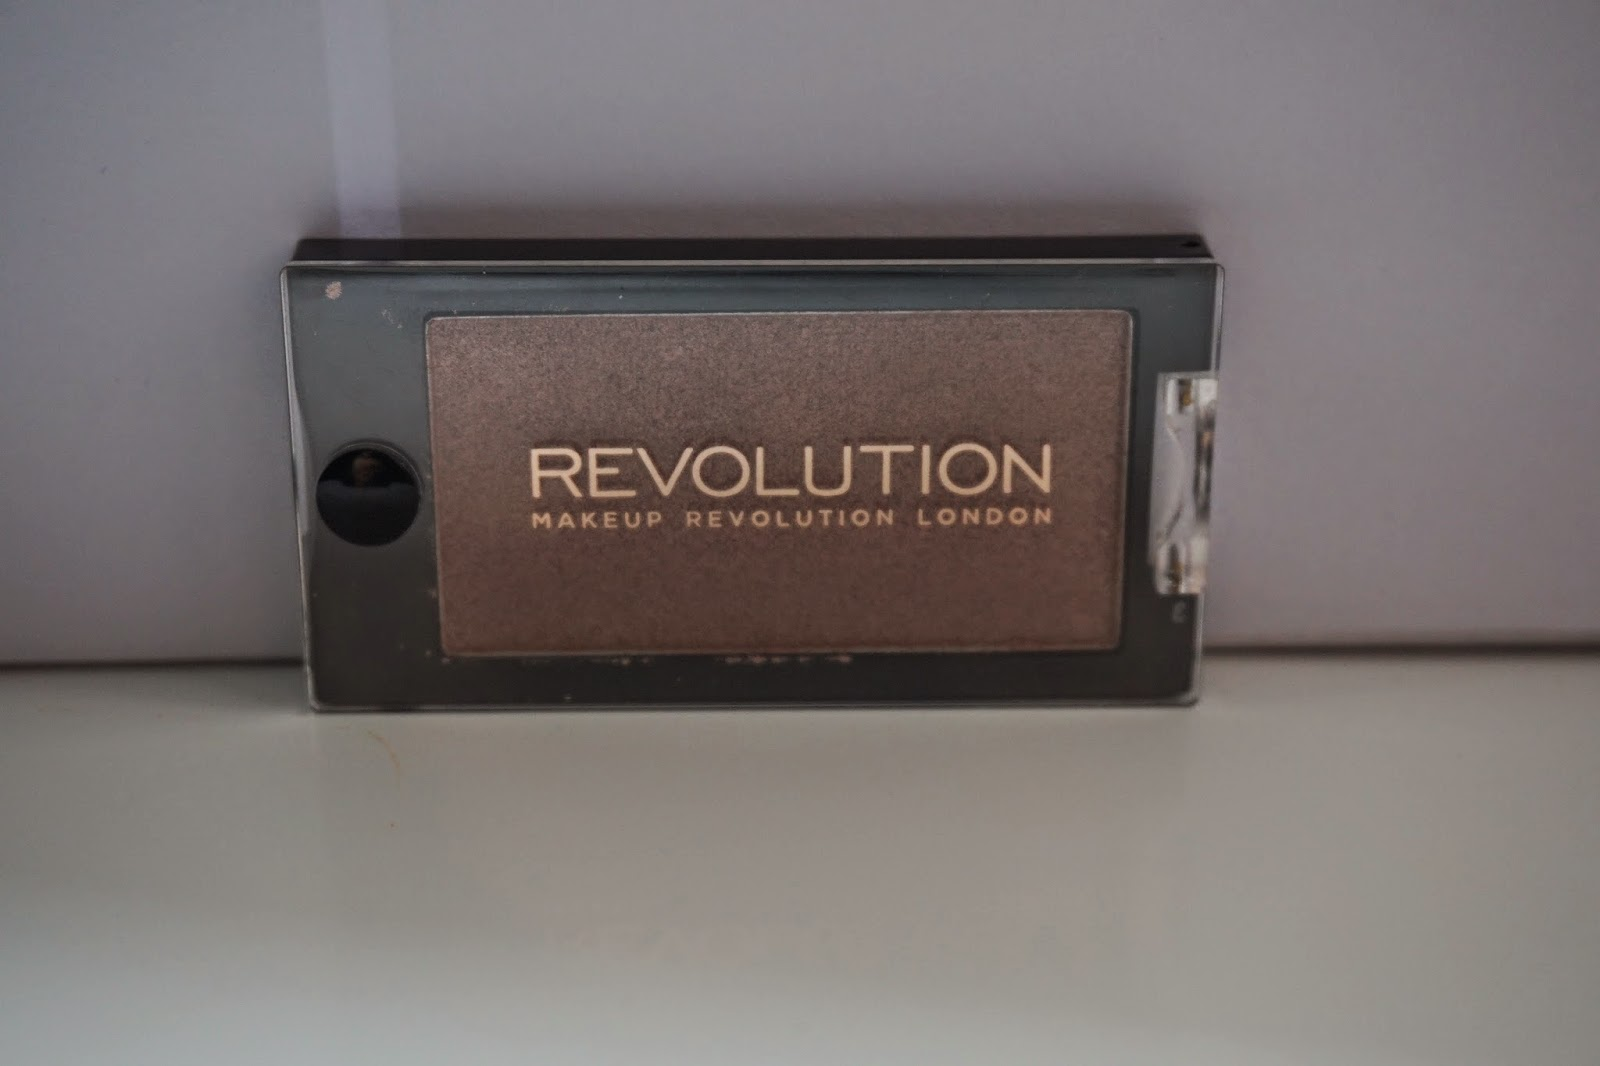 Makeup Revolution The Promised Land Collection Promised Land - Dusty Foxes Beauty Blog